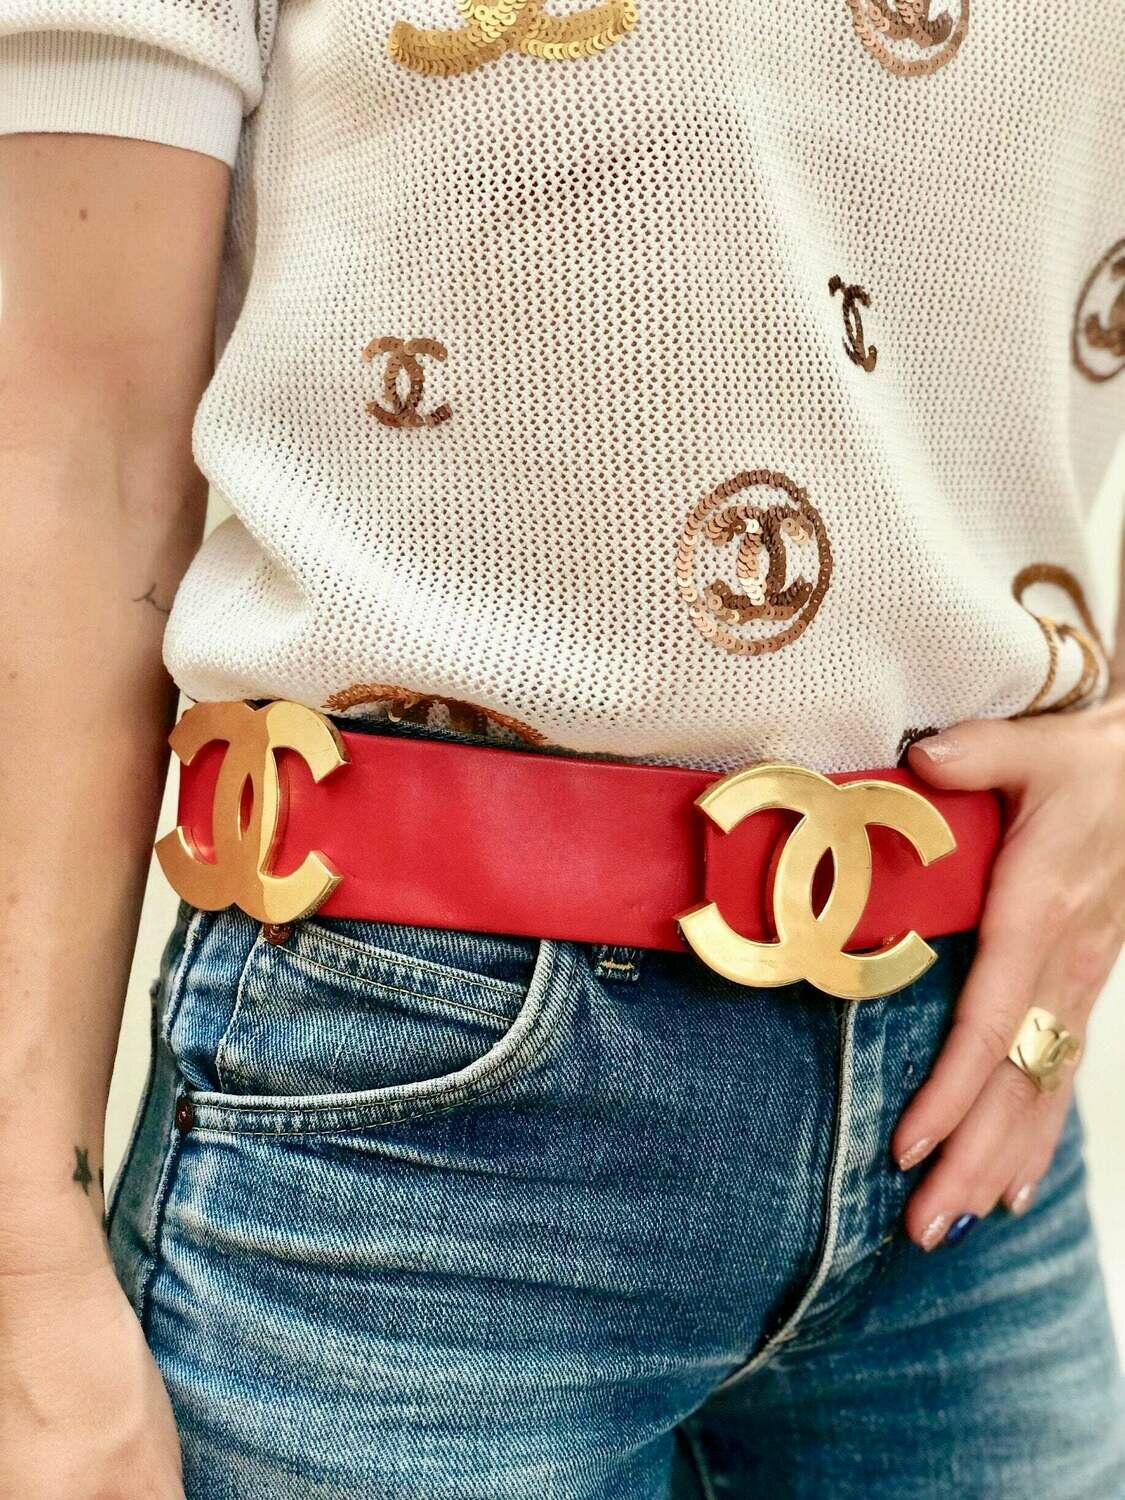 """Vintage 80's CHANEL Huge Gold CC Logo Red Leather Waist Belt Buckle - 75 / 30 - 28"""" Small - Super Rare Collectors Item!"""